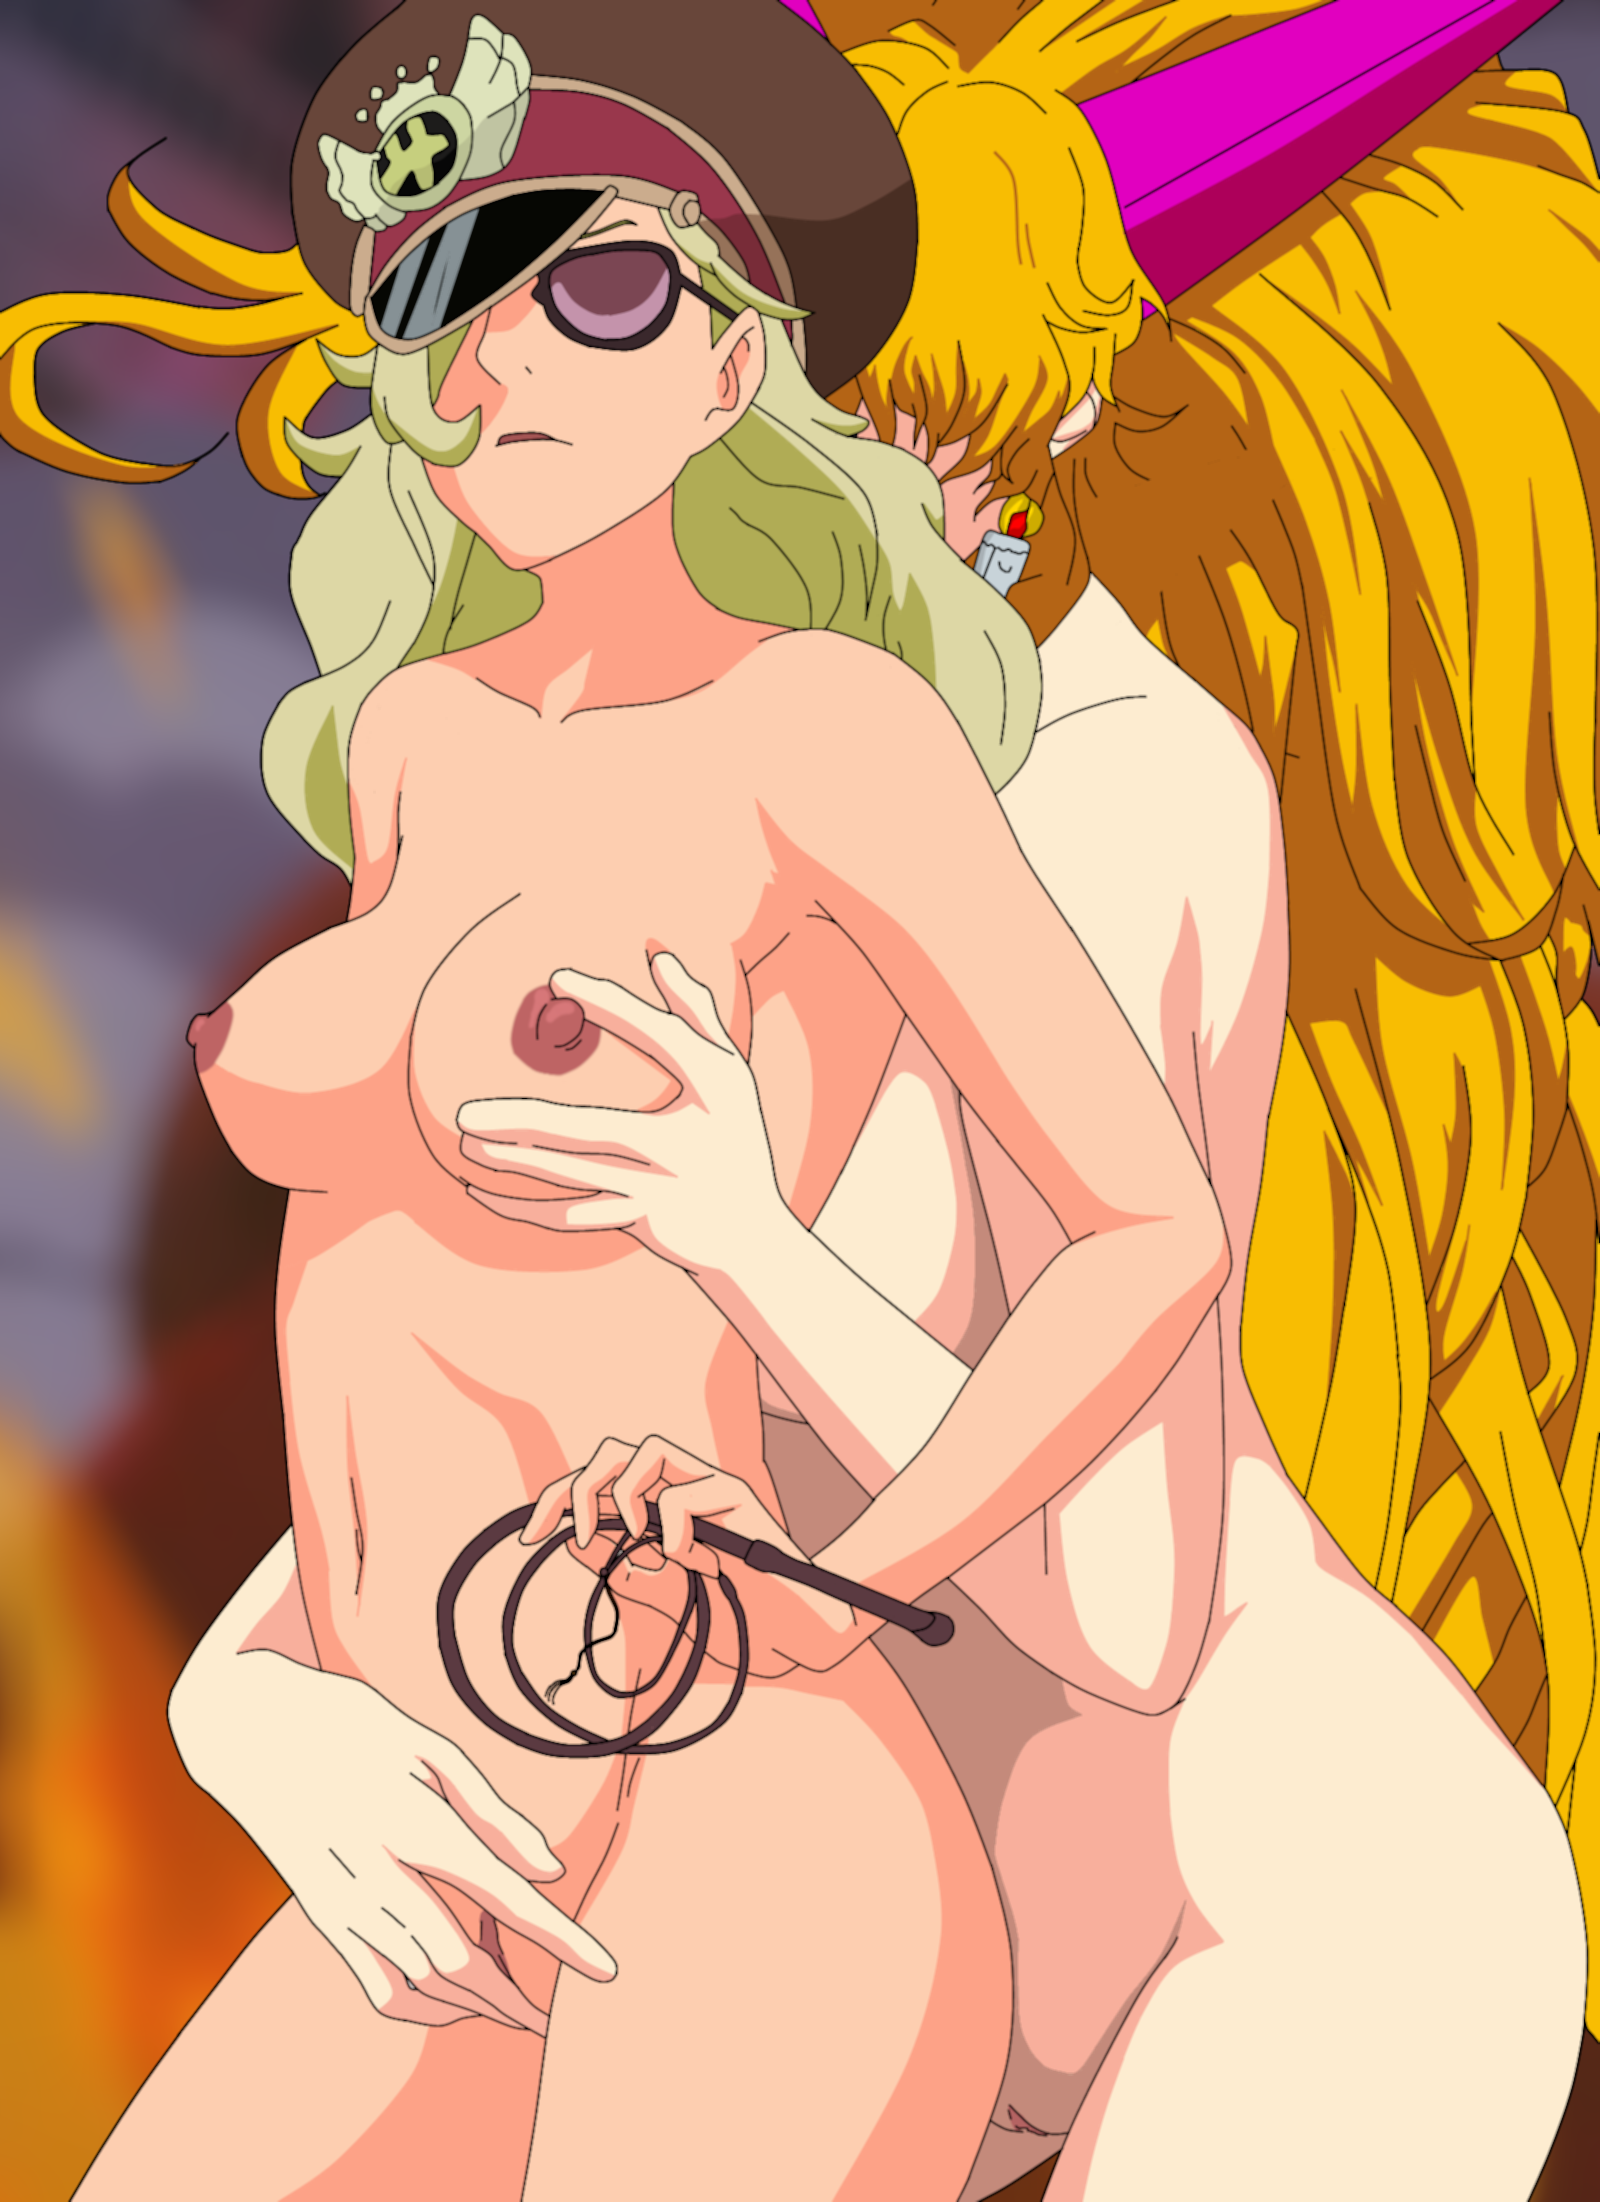 Toon sex pic ##000130497601 2girls breasts domino domino (one piece) highres yuri nipples one piece pussy sadi-chan starbag uncensored whip yuri